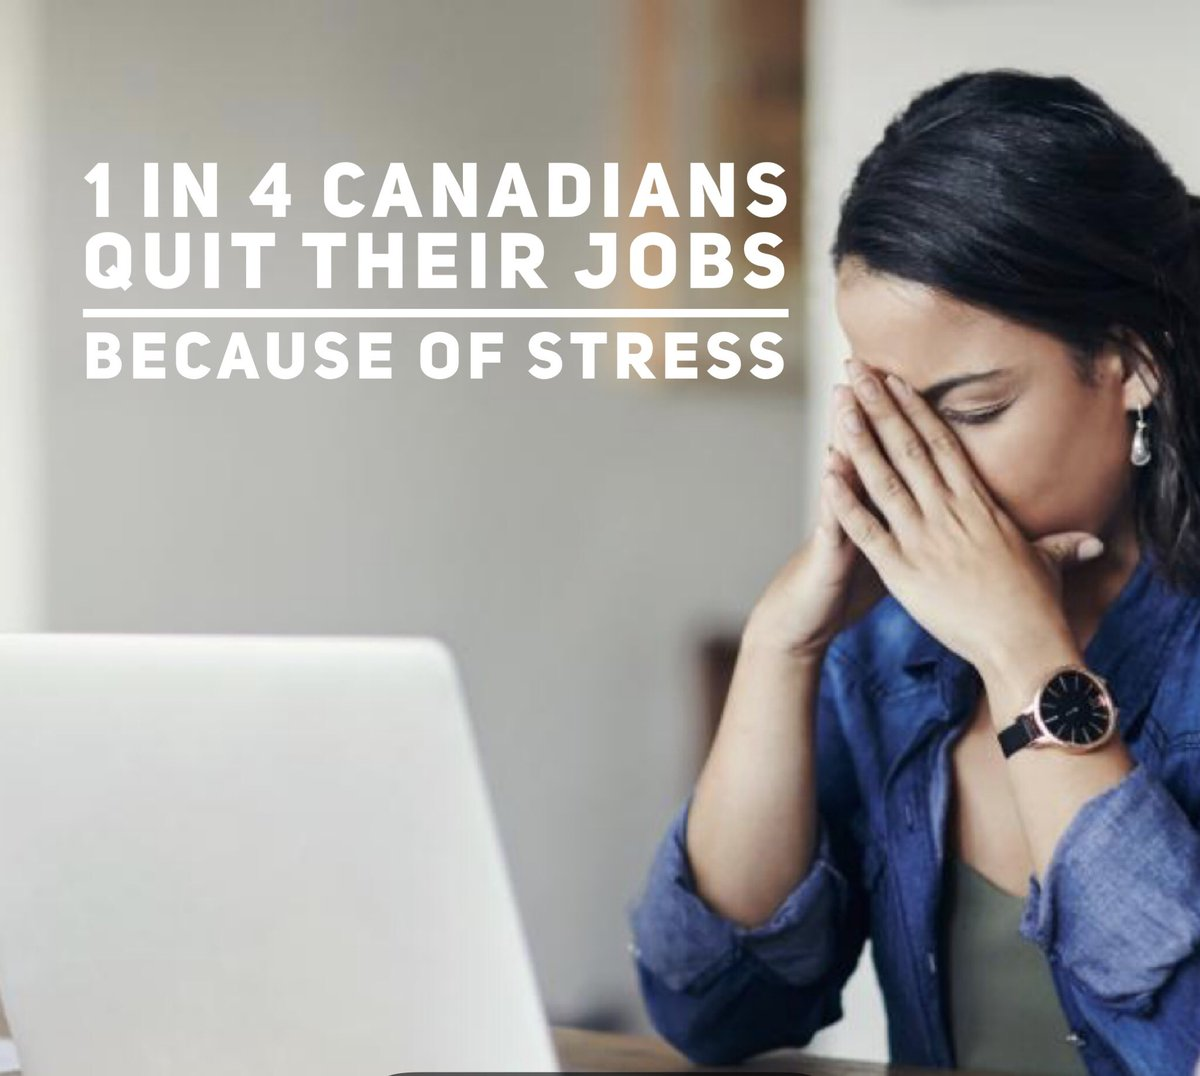 1 in 4 Canadians quit their job because of stress.  I have been that person more than once. Learning to manage stress & anxiety is a new set of skills our society has not begun developing in our youth.  #stress #stressrelief #stressedout #anxietyissues #anxietysucks #stresscoach